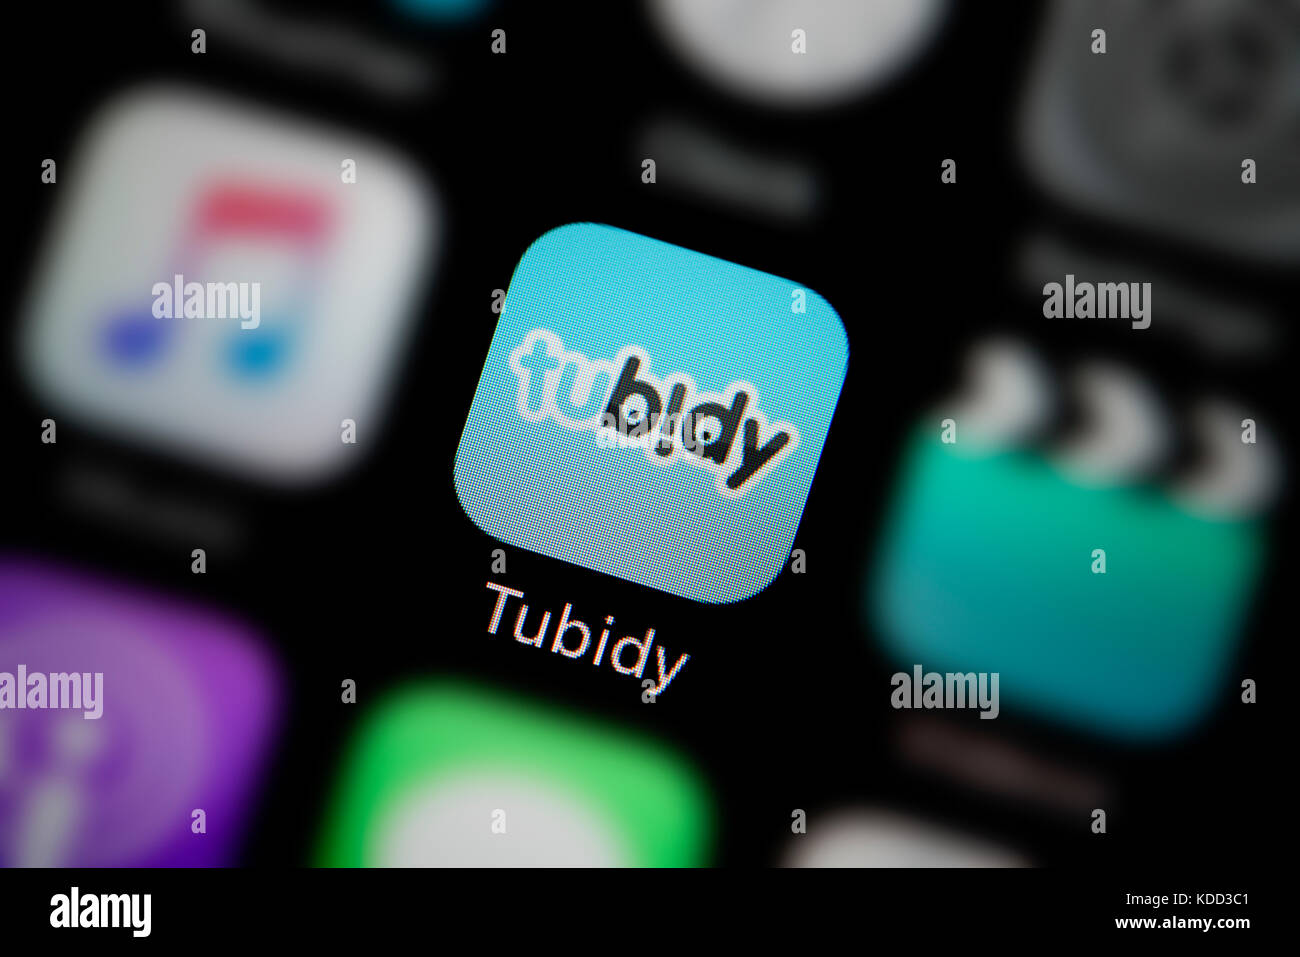 A Close Up Shot Of The Logo Representing Tubidy App Icon As Seen On